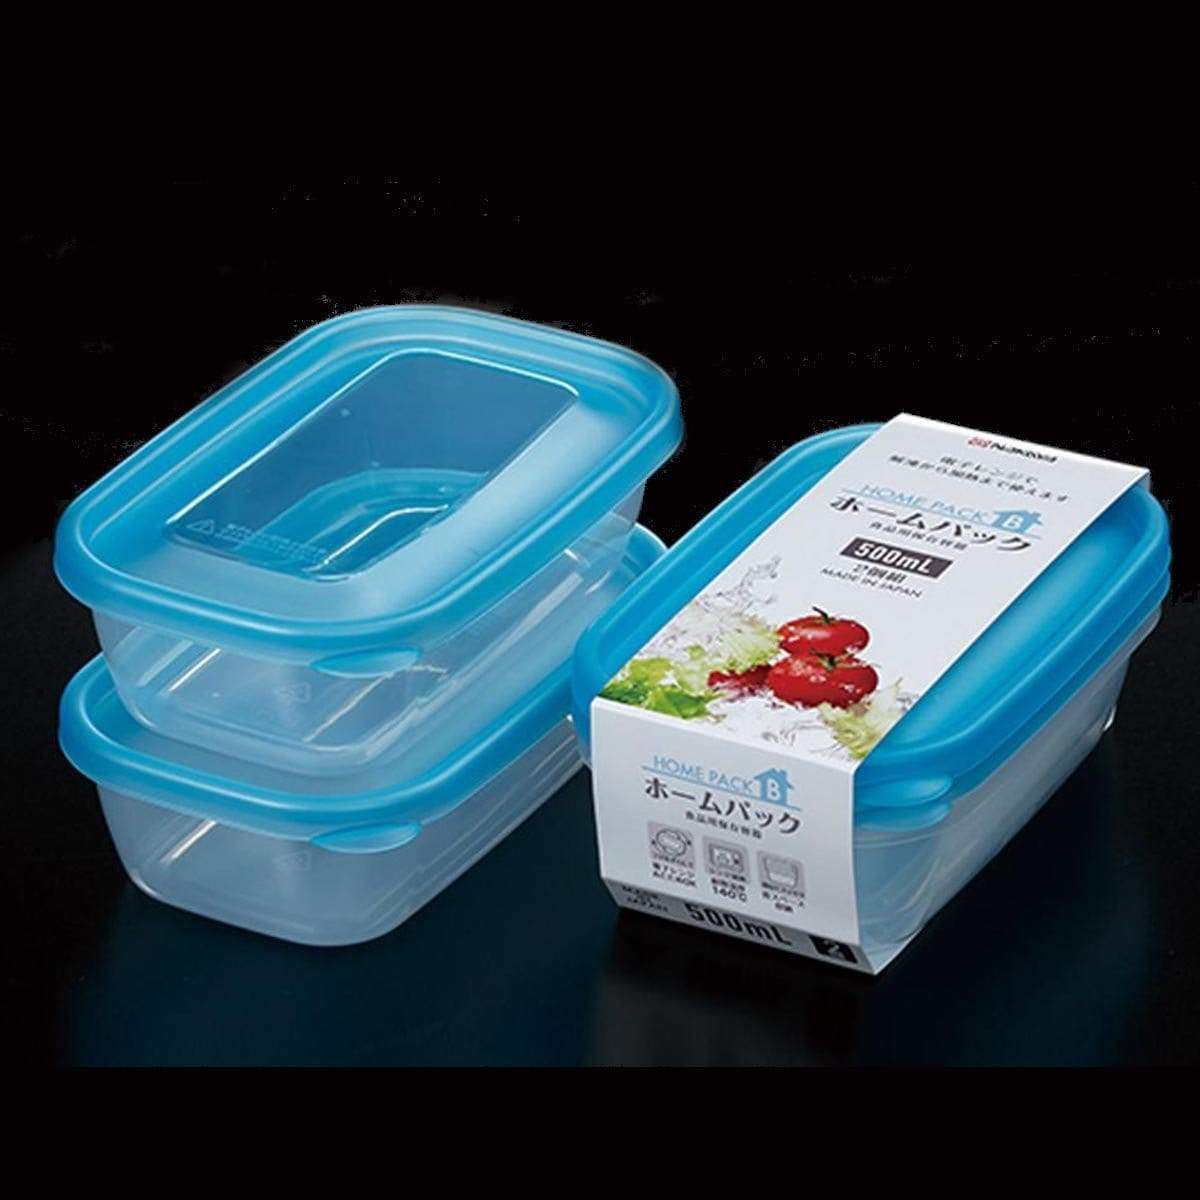 Japanese Plastic Food Storage Container B (500ml x 2p)